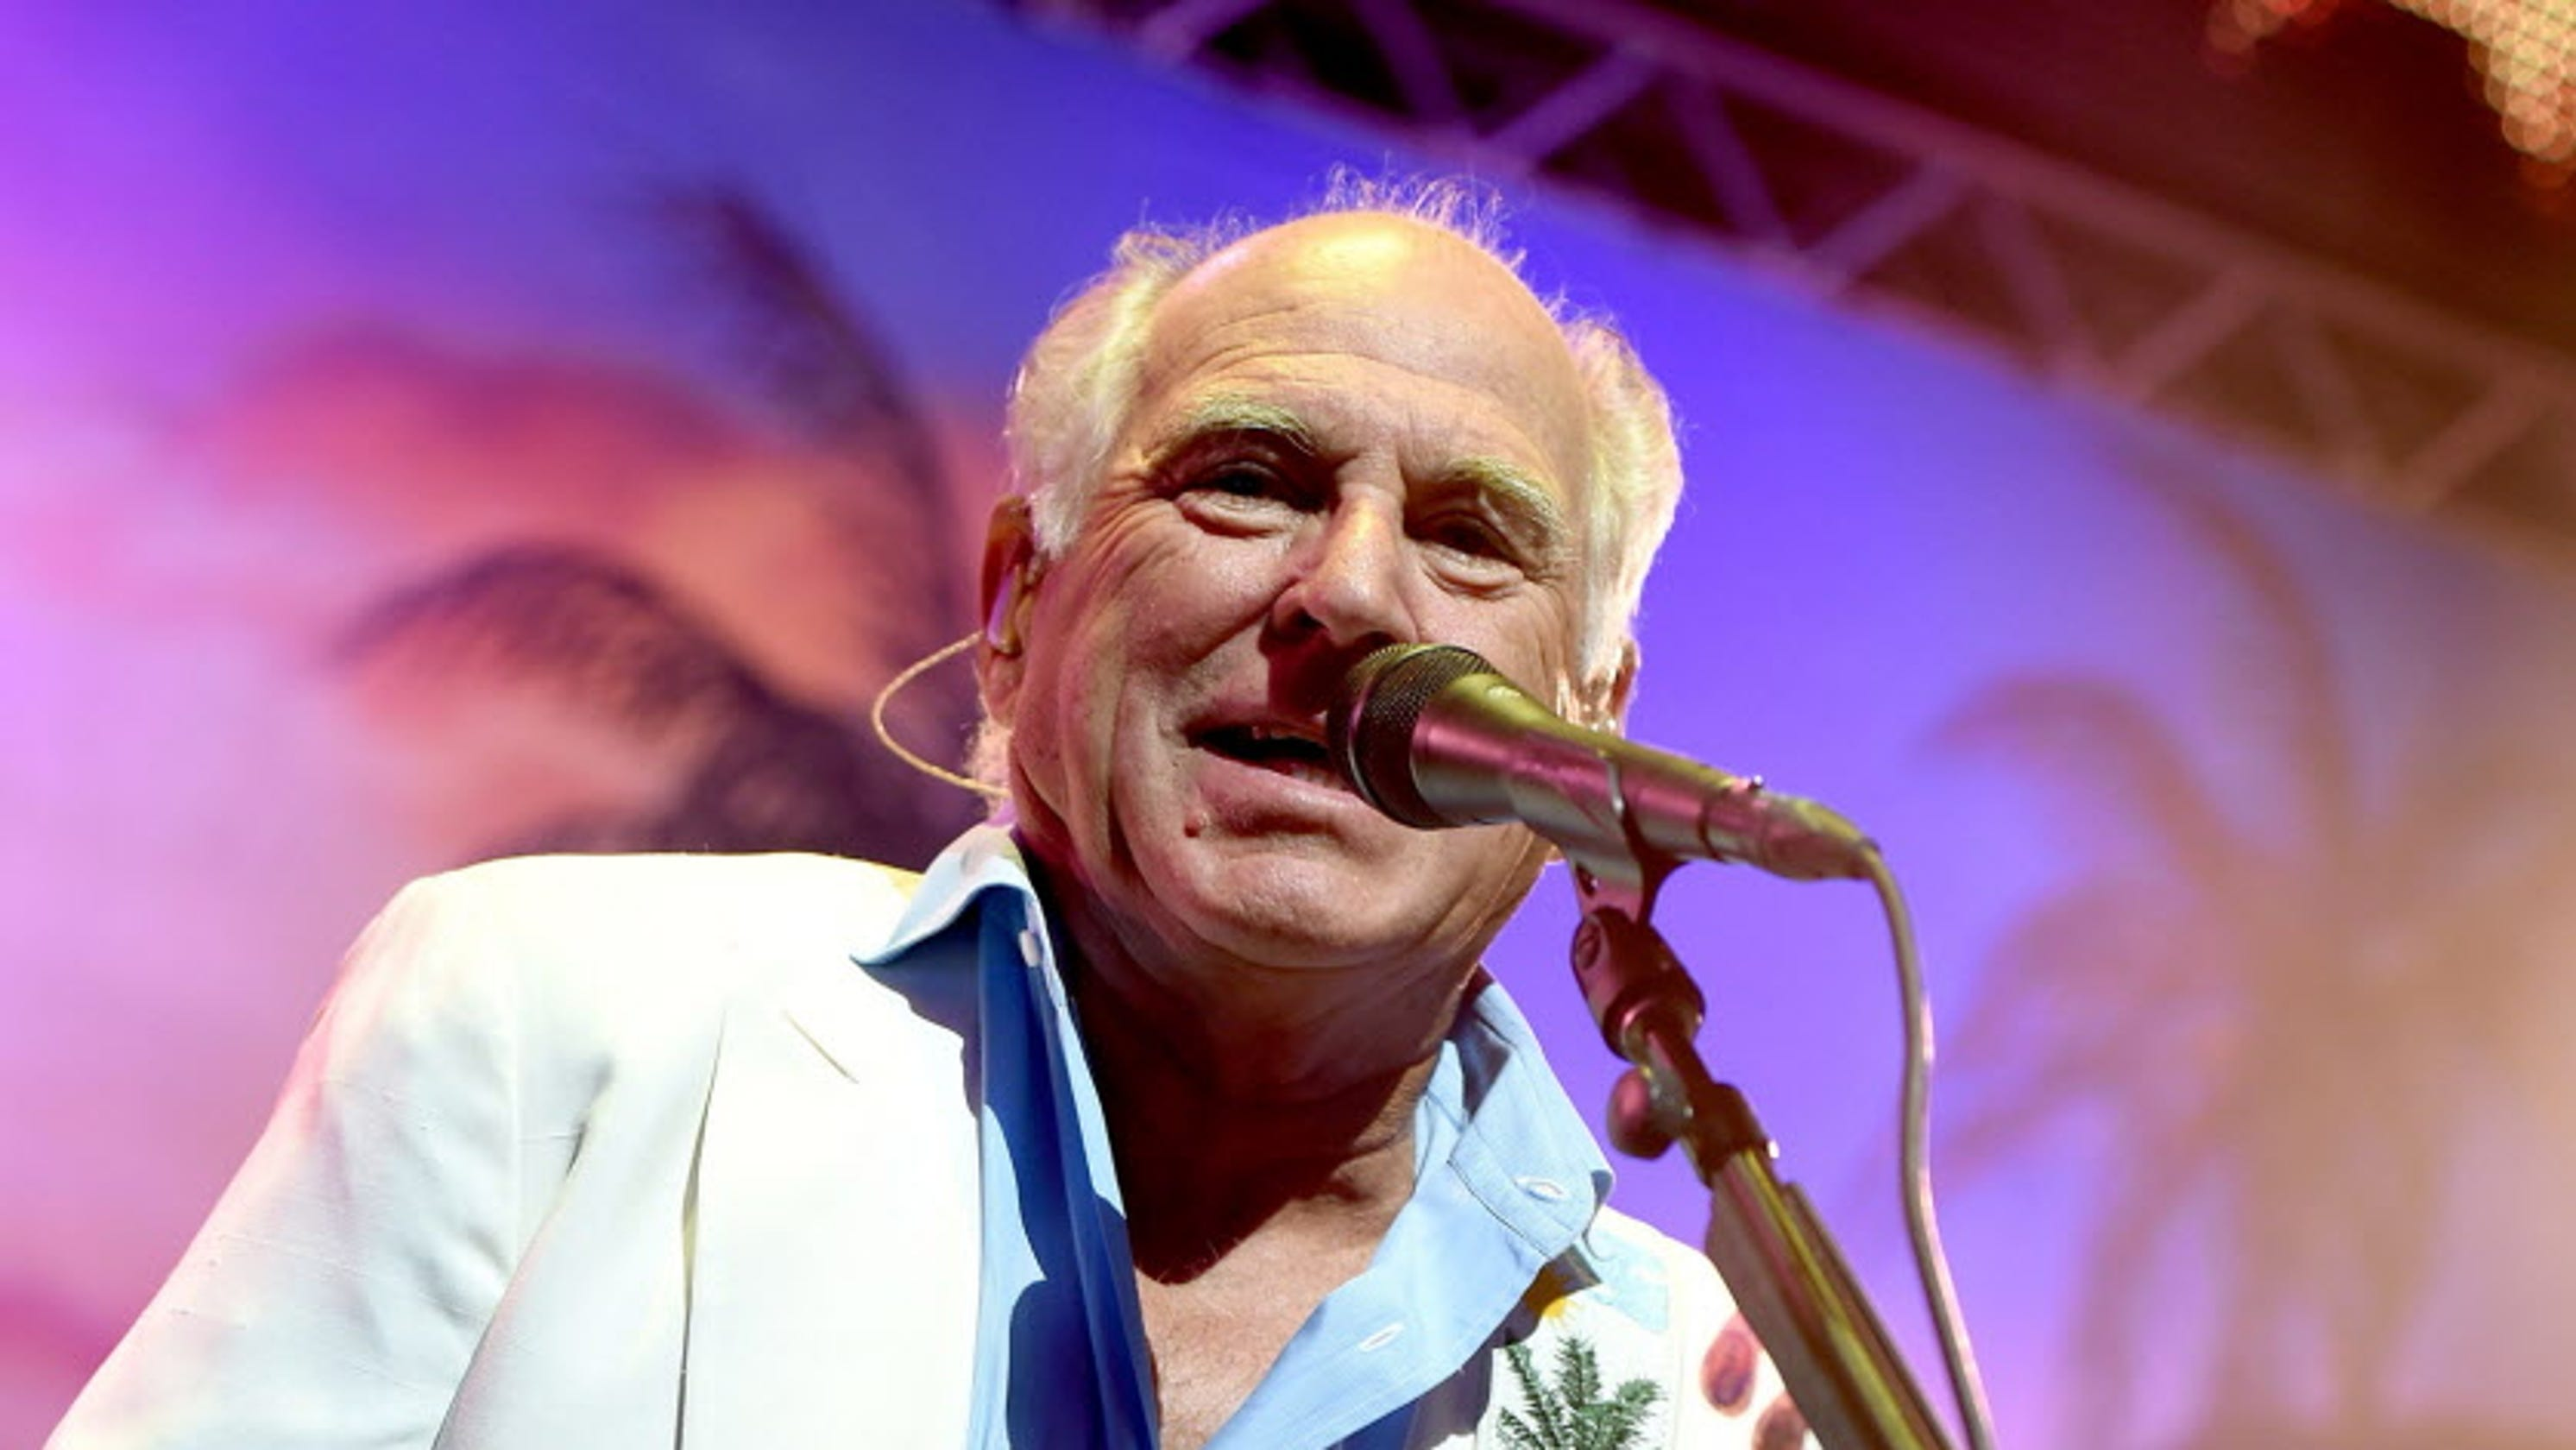 Jimmy Buffett is coming back to Alpine Valley Music Theatre